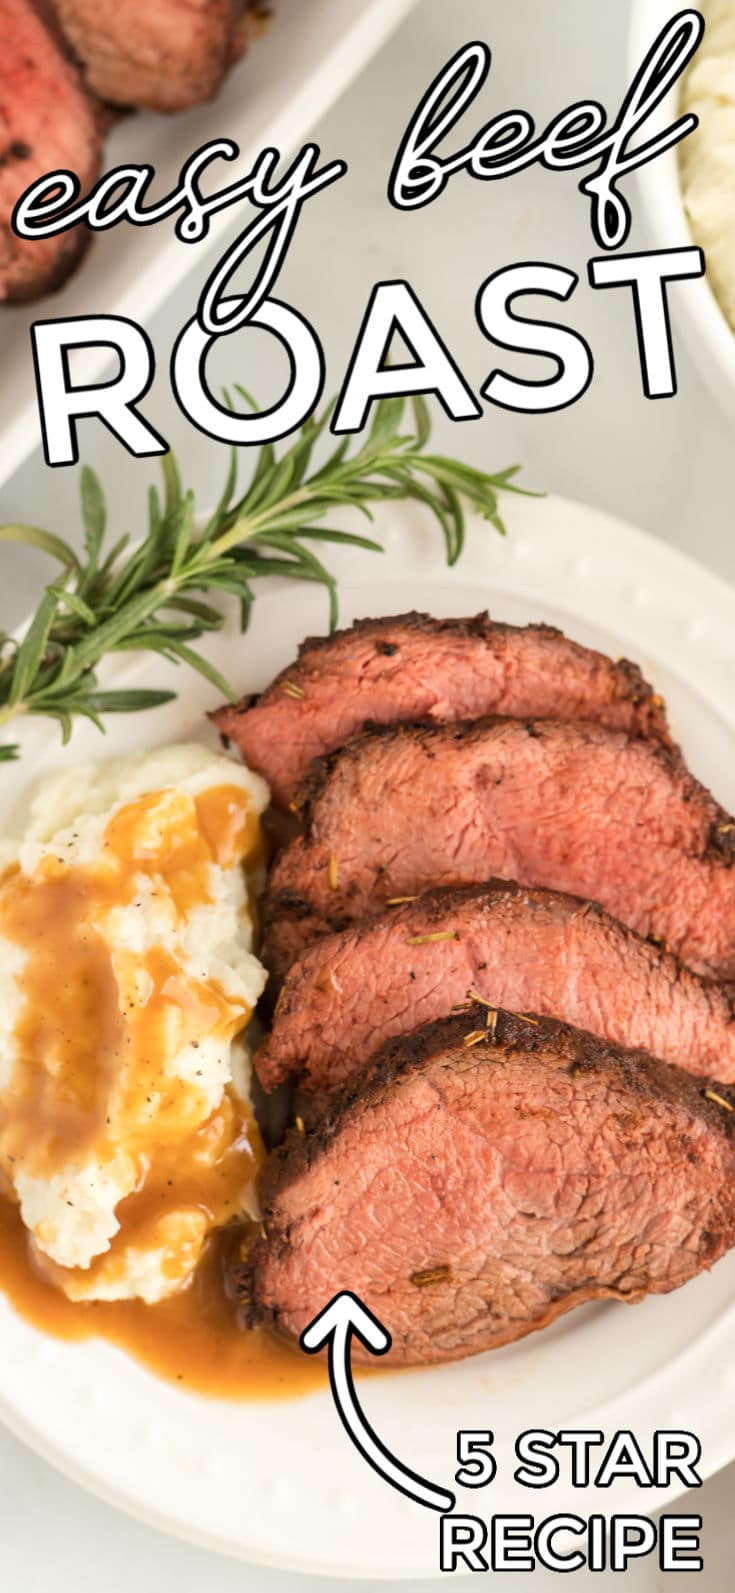 This Beef RoastRecipe is juicy, tender, and packed with great flavor thanks to the rub and brown gravy made with the pan drippings. via @easybudgetrecipes